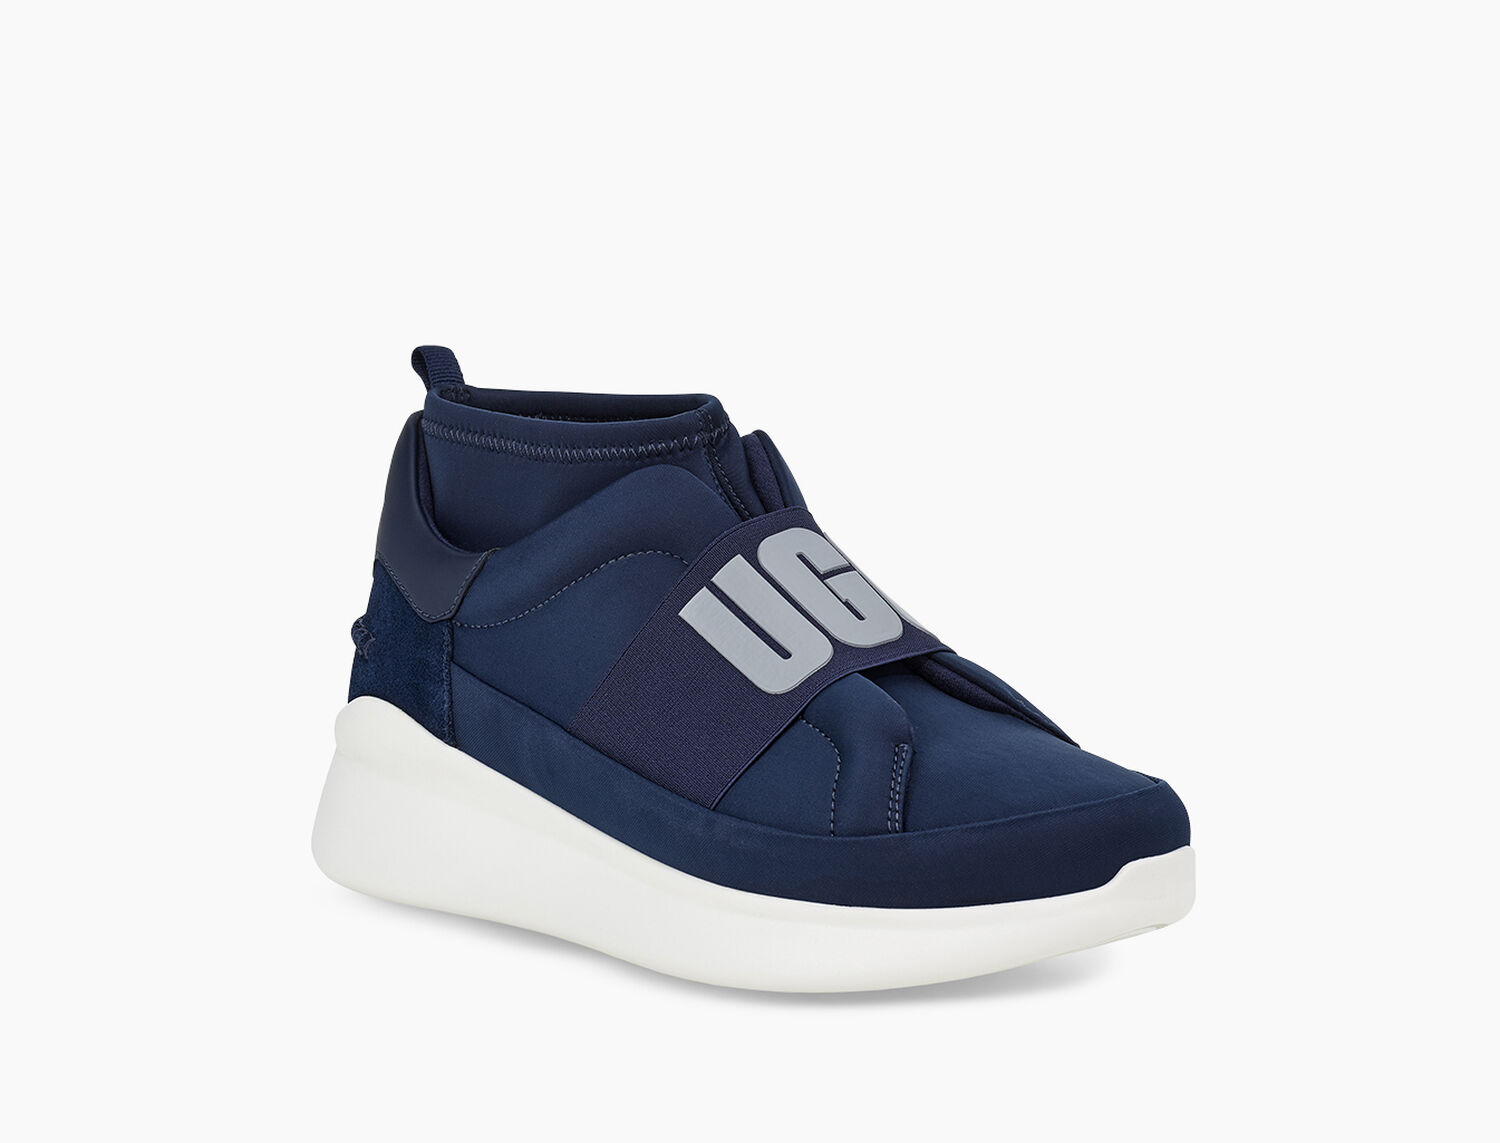 ec046791fb9 Women's Share this product Neutra Sneaker